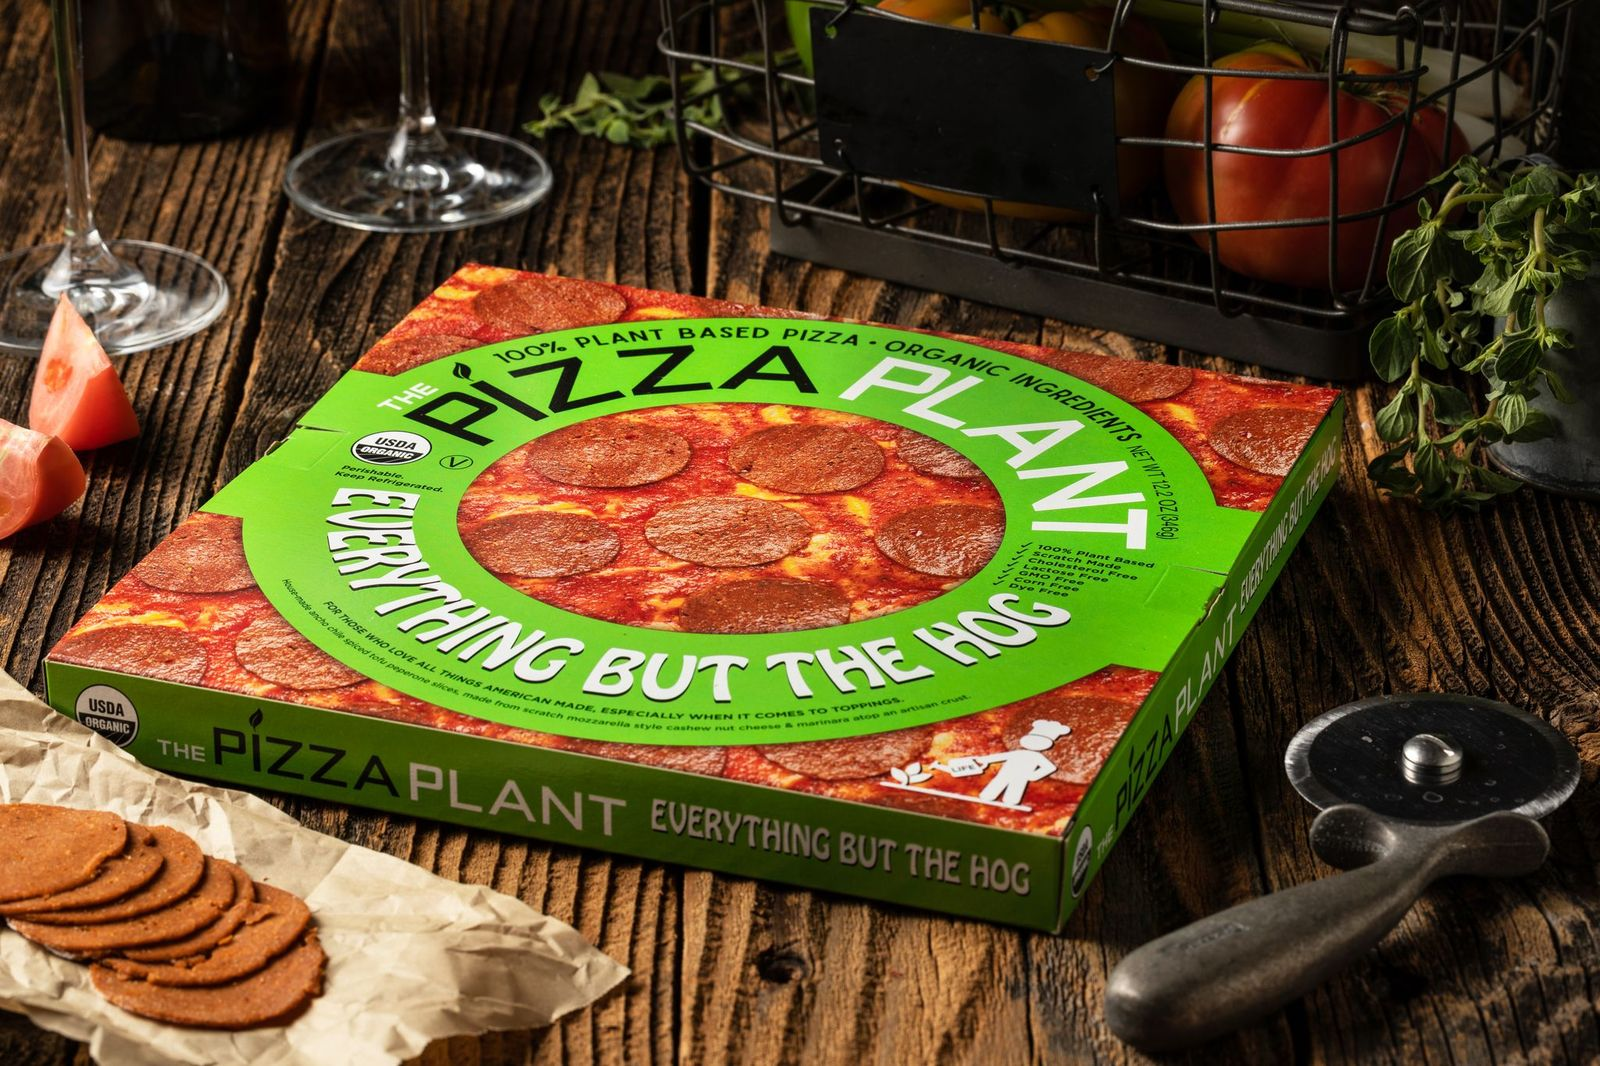 Everything But the Hog Plant-Based Pizza